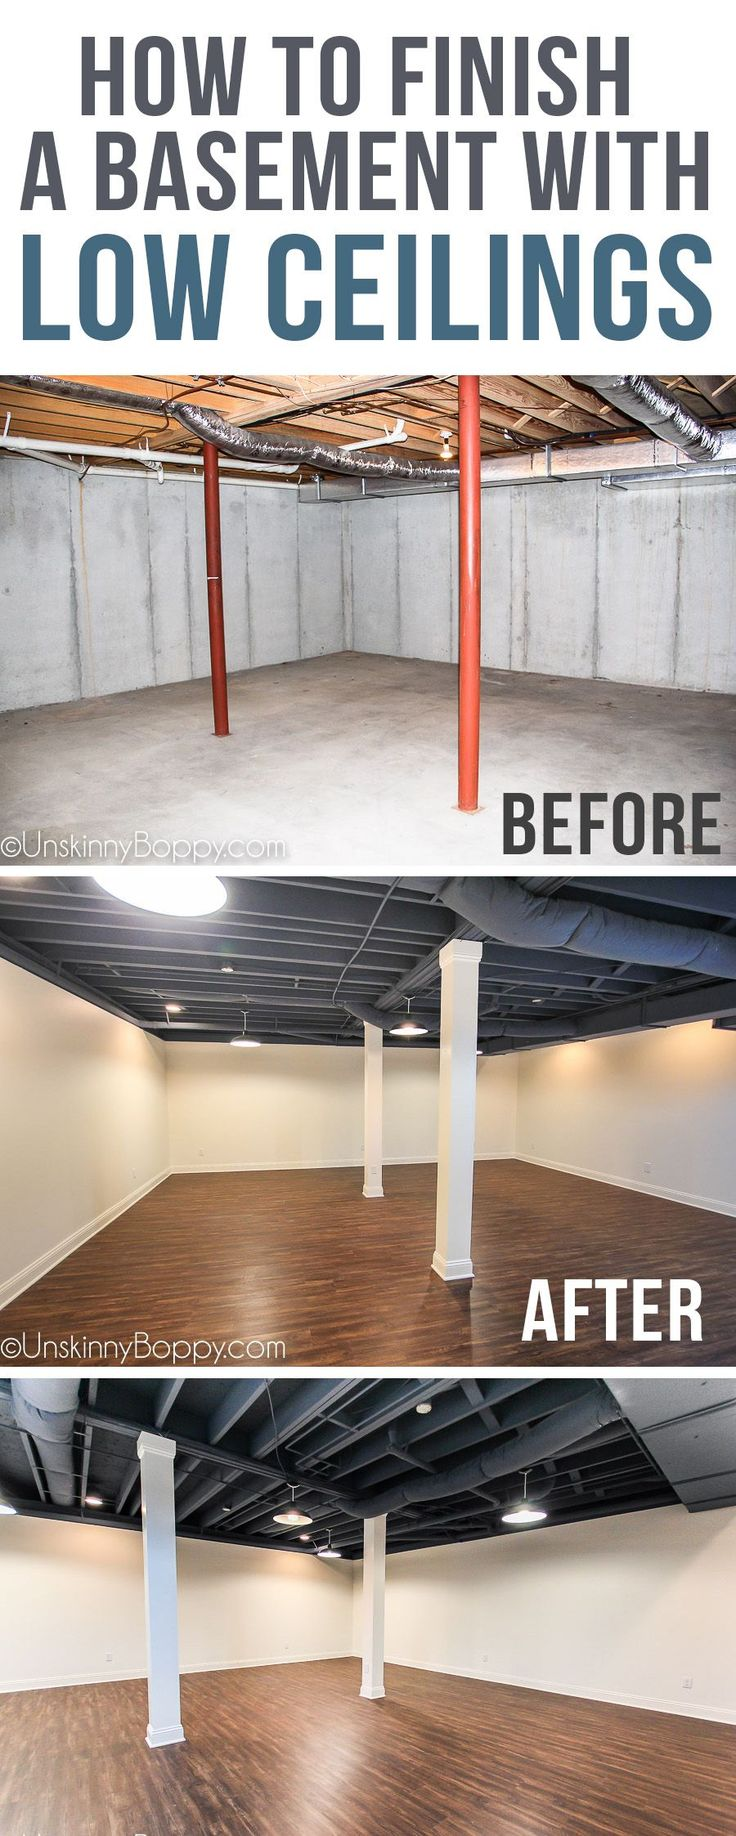 Awesome How to Make A Basement Livable